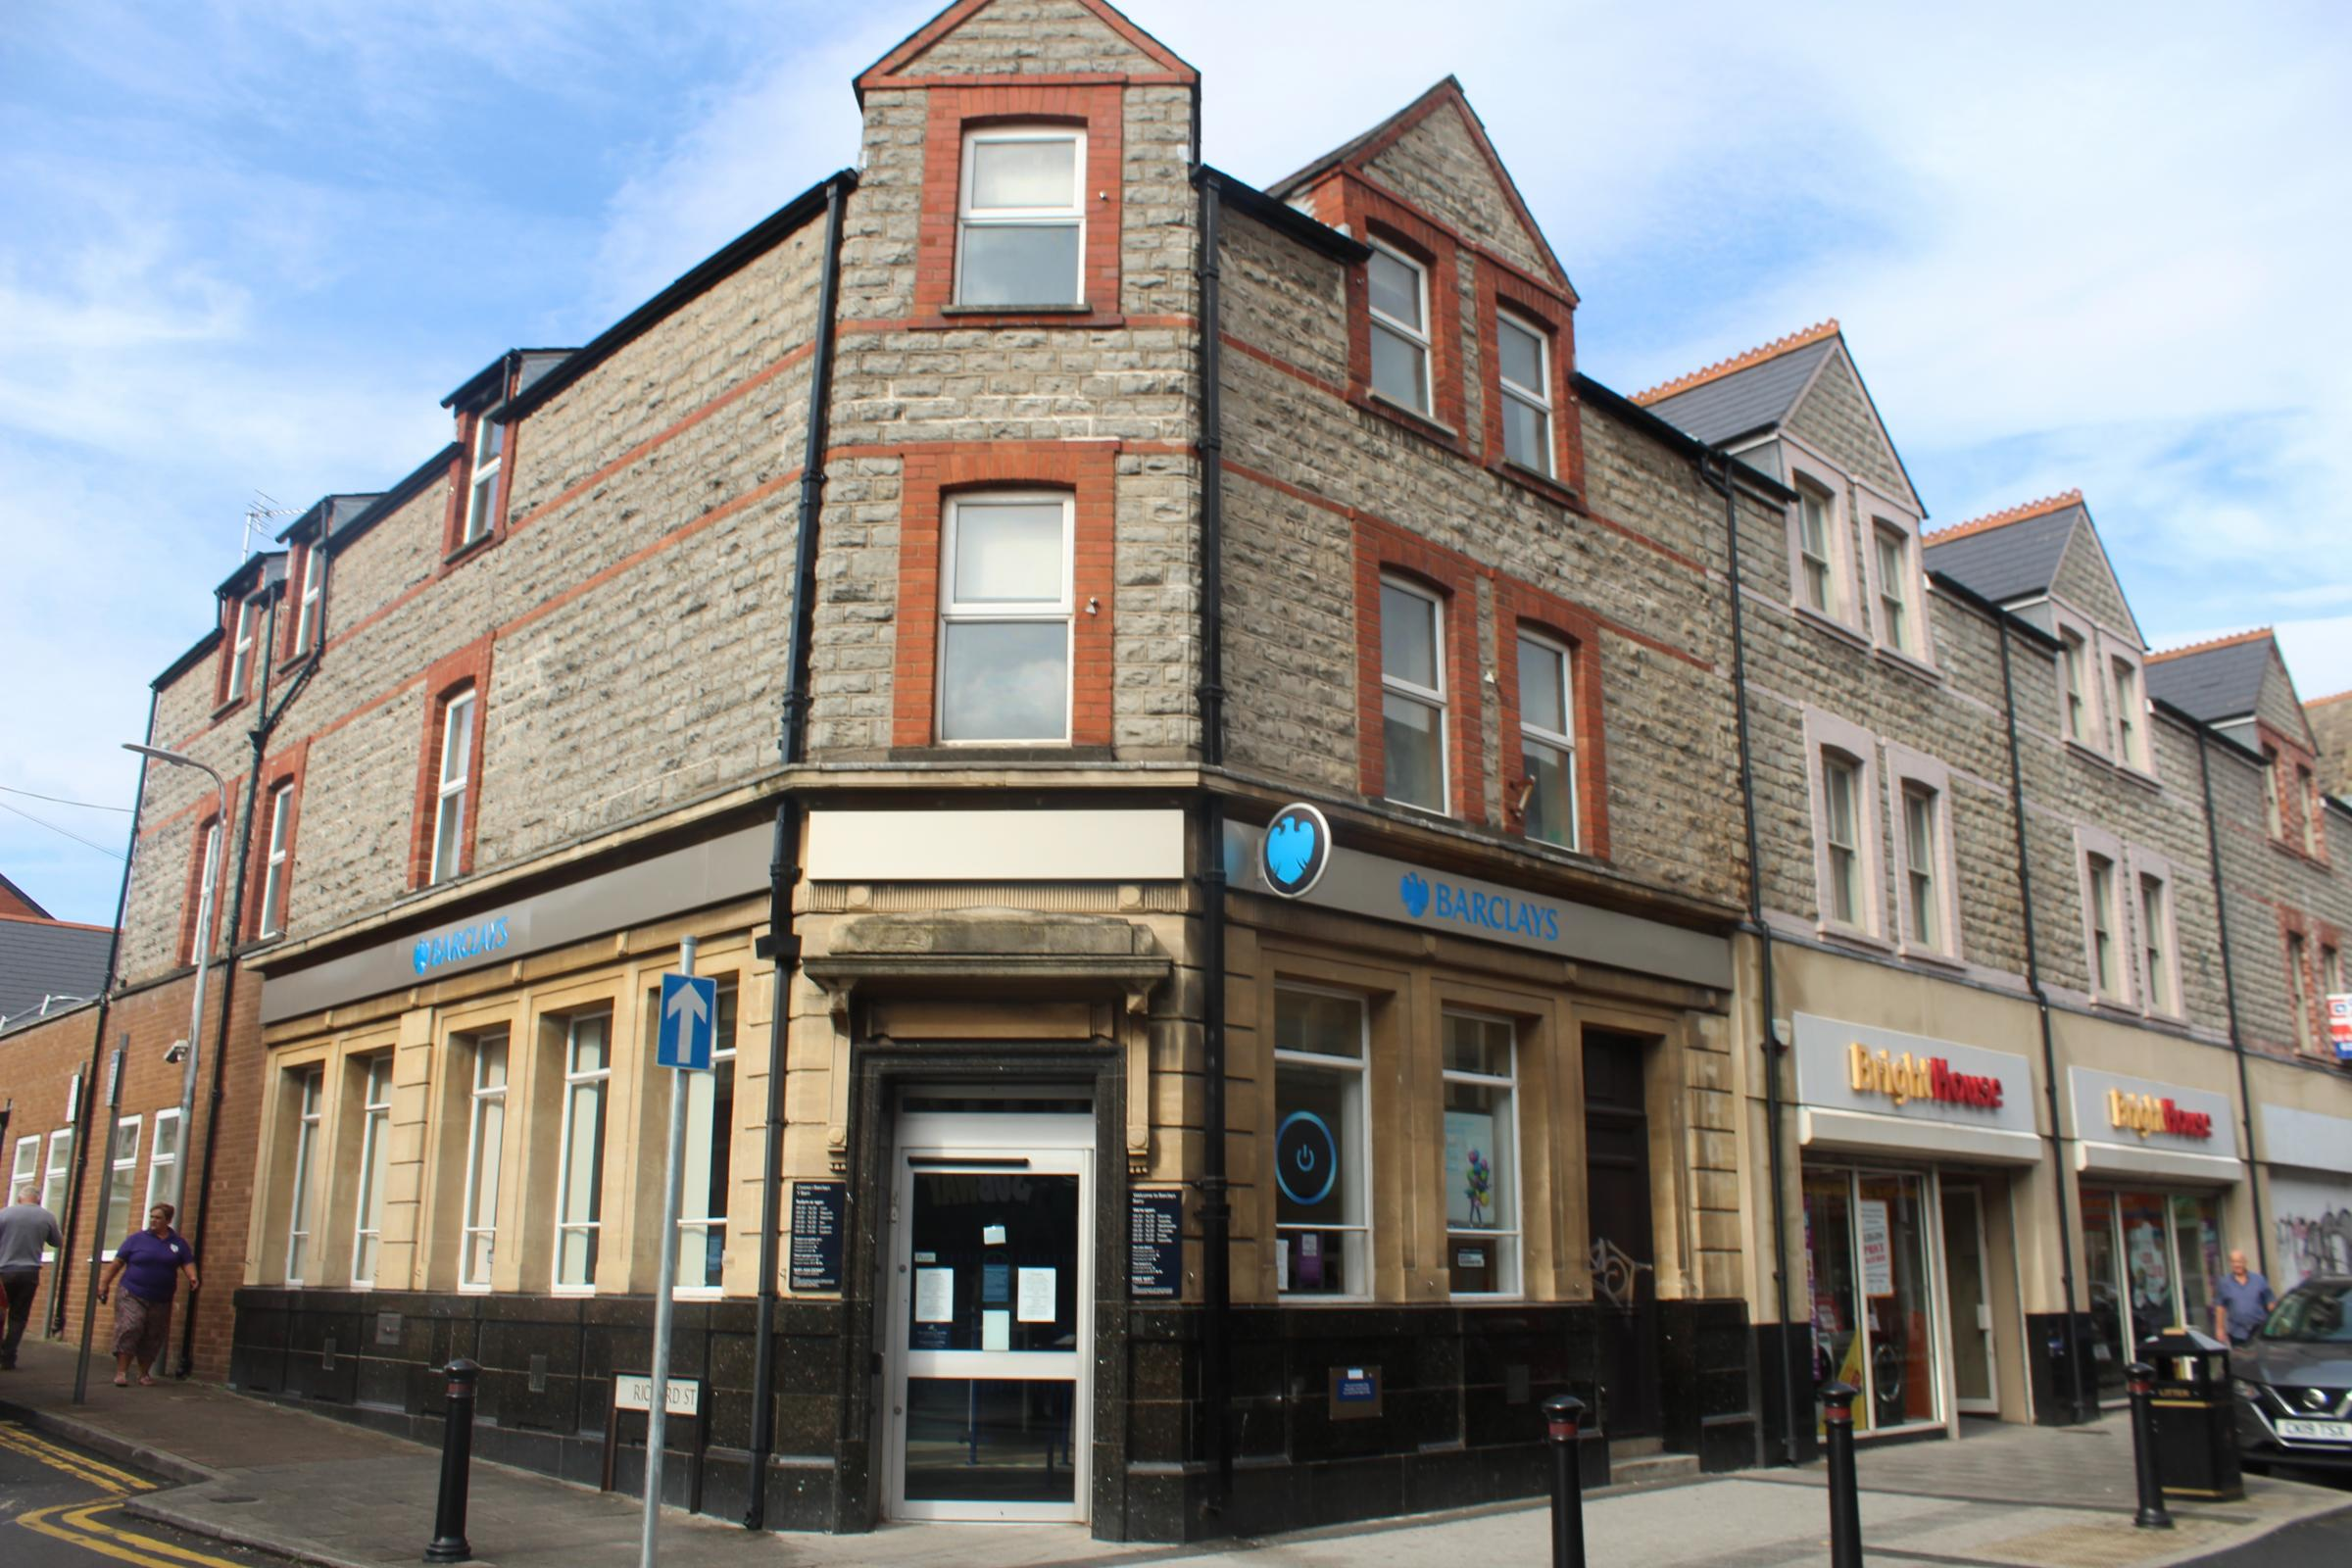 Barclays bank roof lead theft results in temporary Barry branch closure